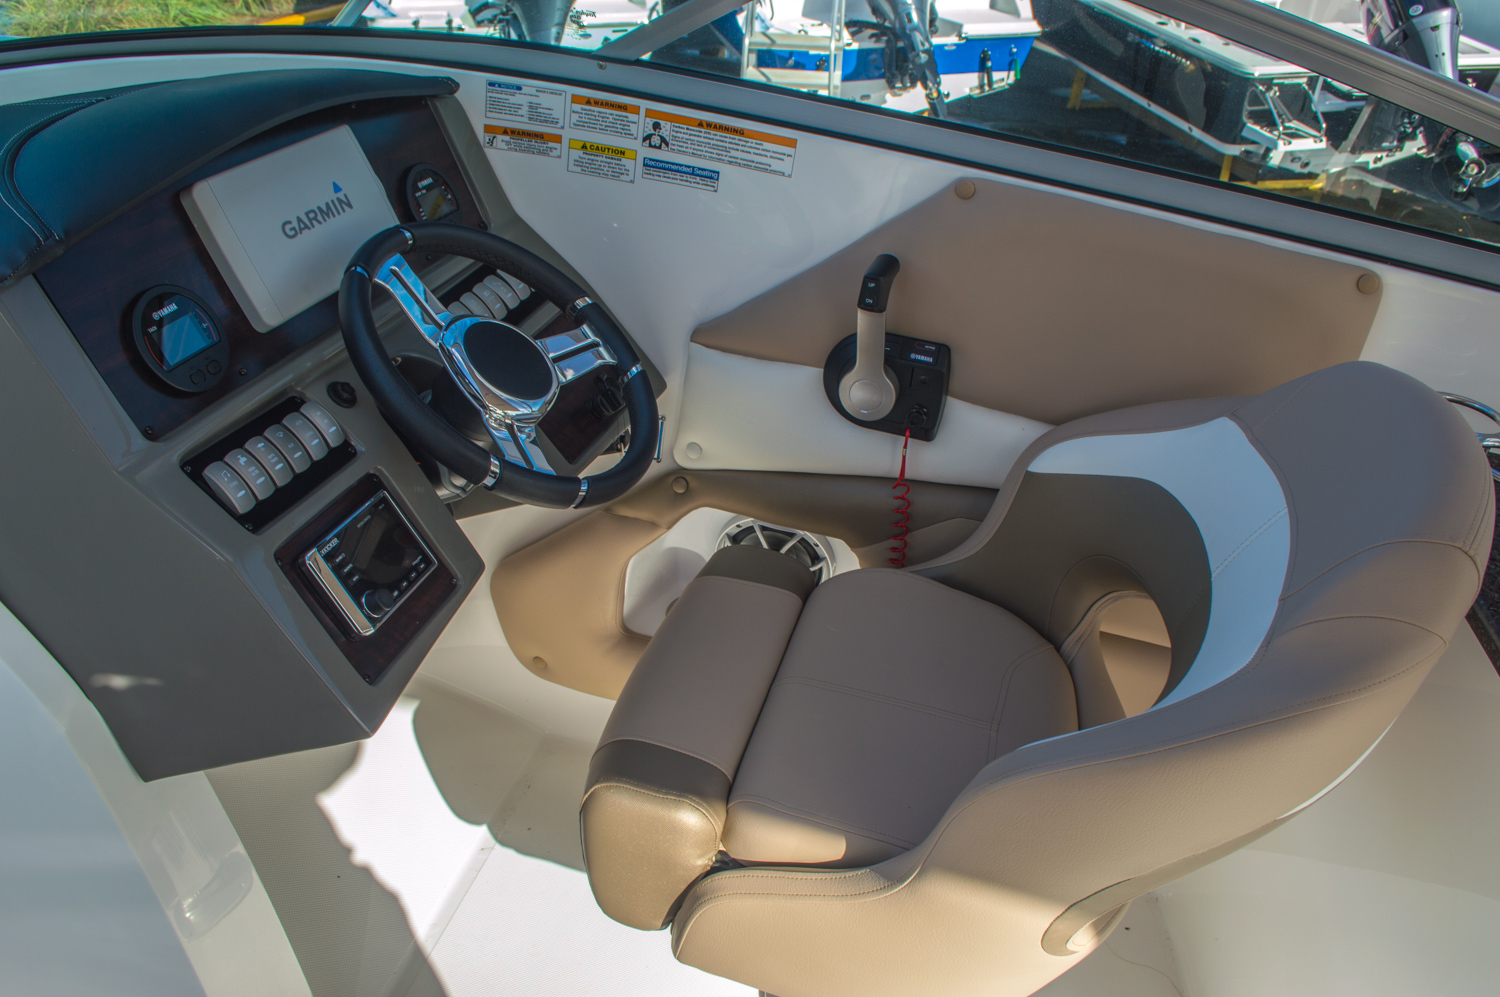 Thumbnail 41 for New 2016 Hurricane SunDeck SD 2690 OB boat for sale in West Palm Beach, FL